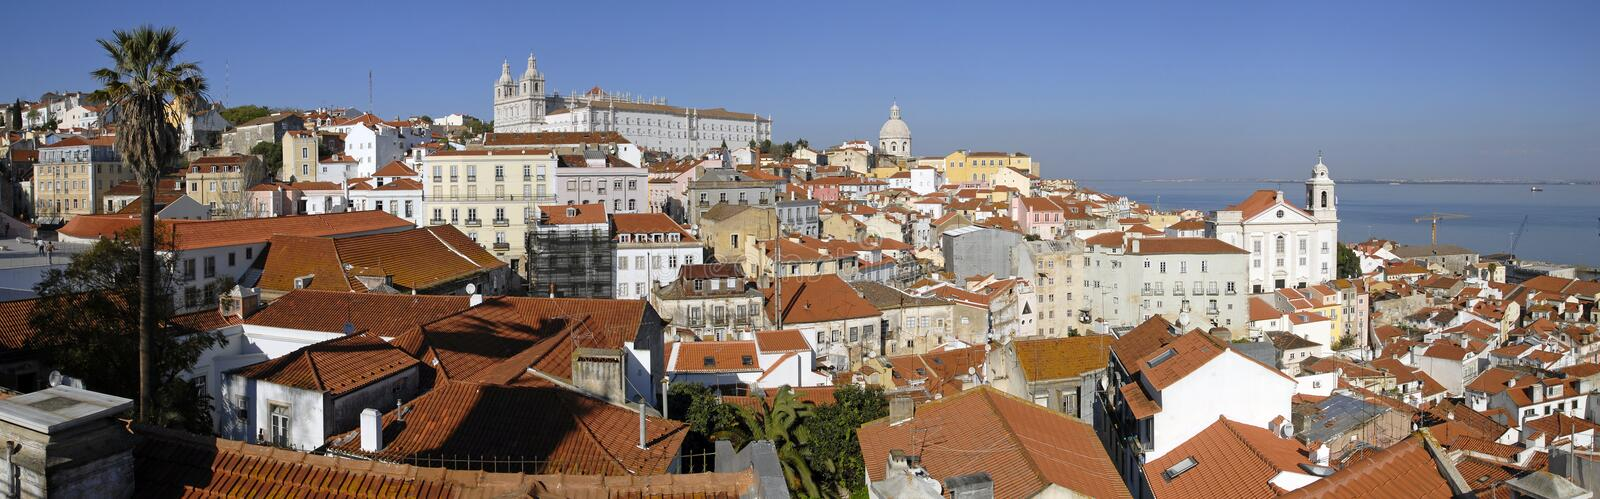 Alfama urban district panorama of Lisbon. royalty free stock images